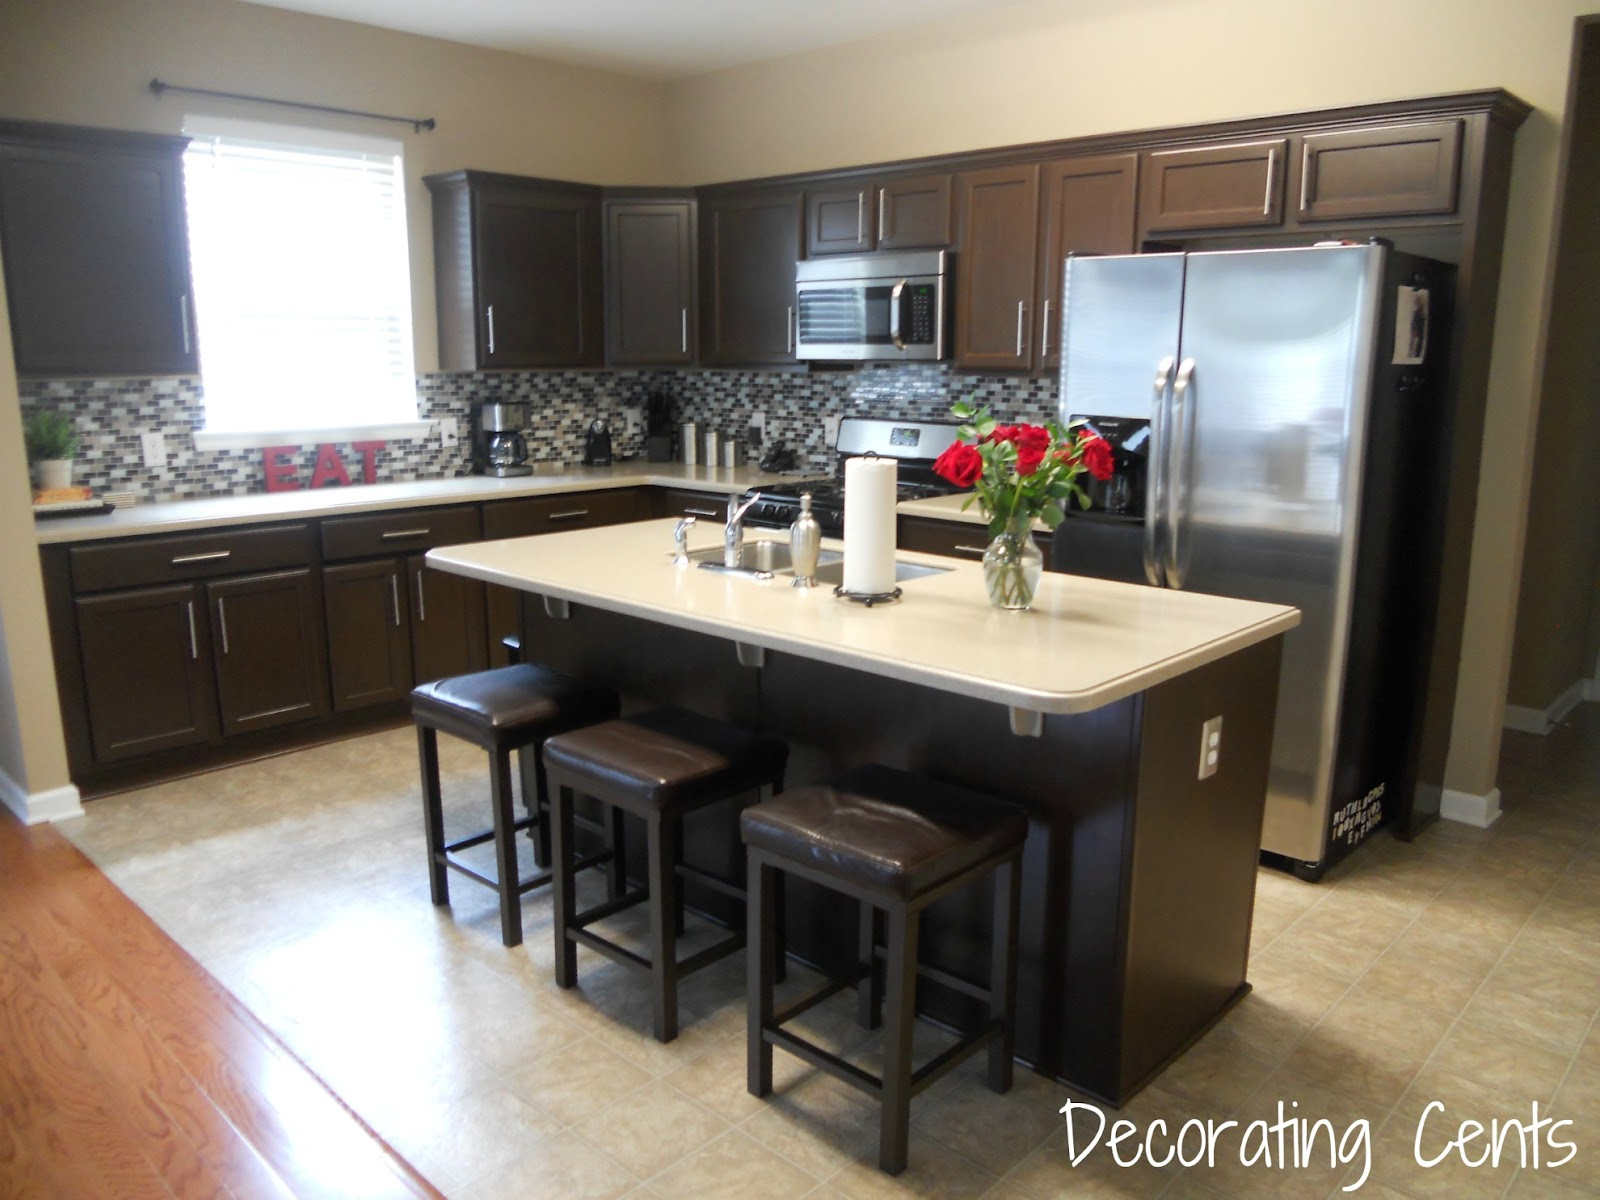 Redecorating Kitchen Decorating Cents Kitchen Cabinets Revealed